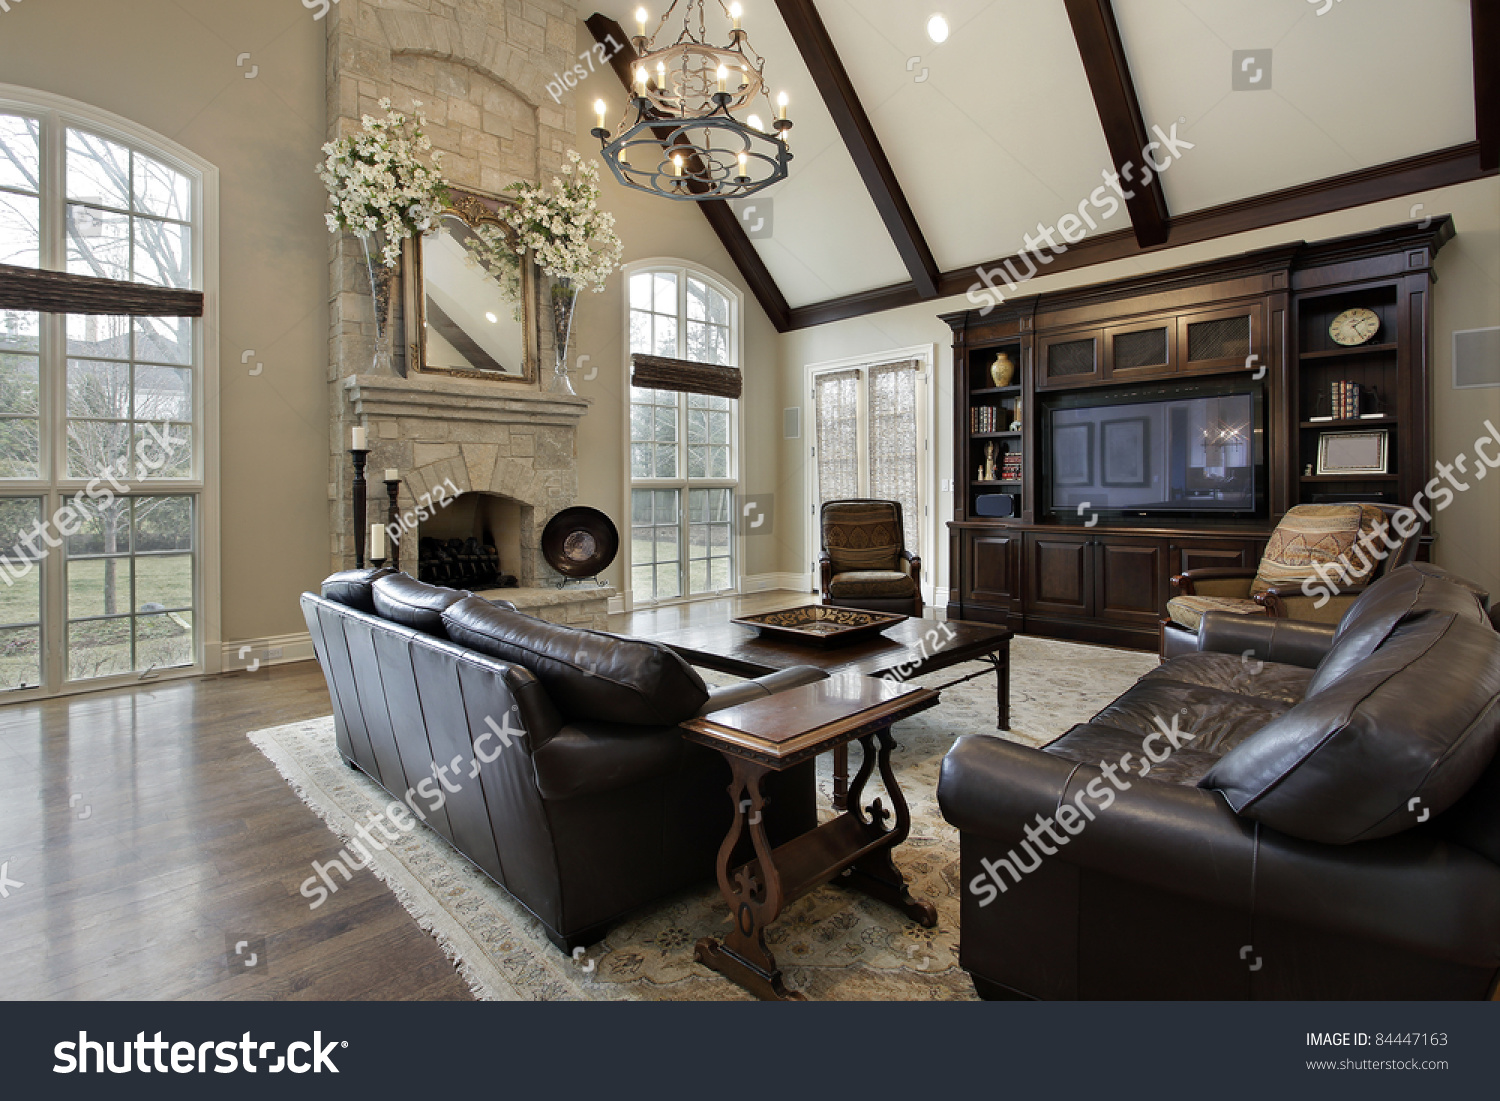 family room luxury home two story stock photo 84447163 shutterstock